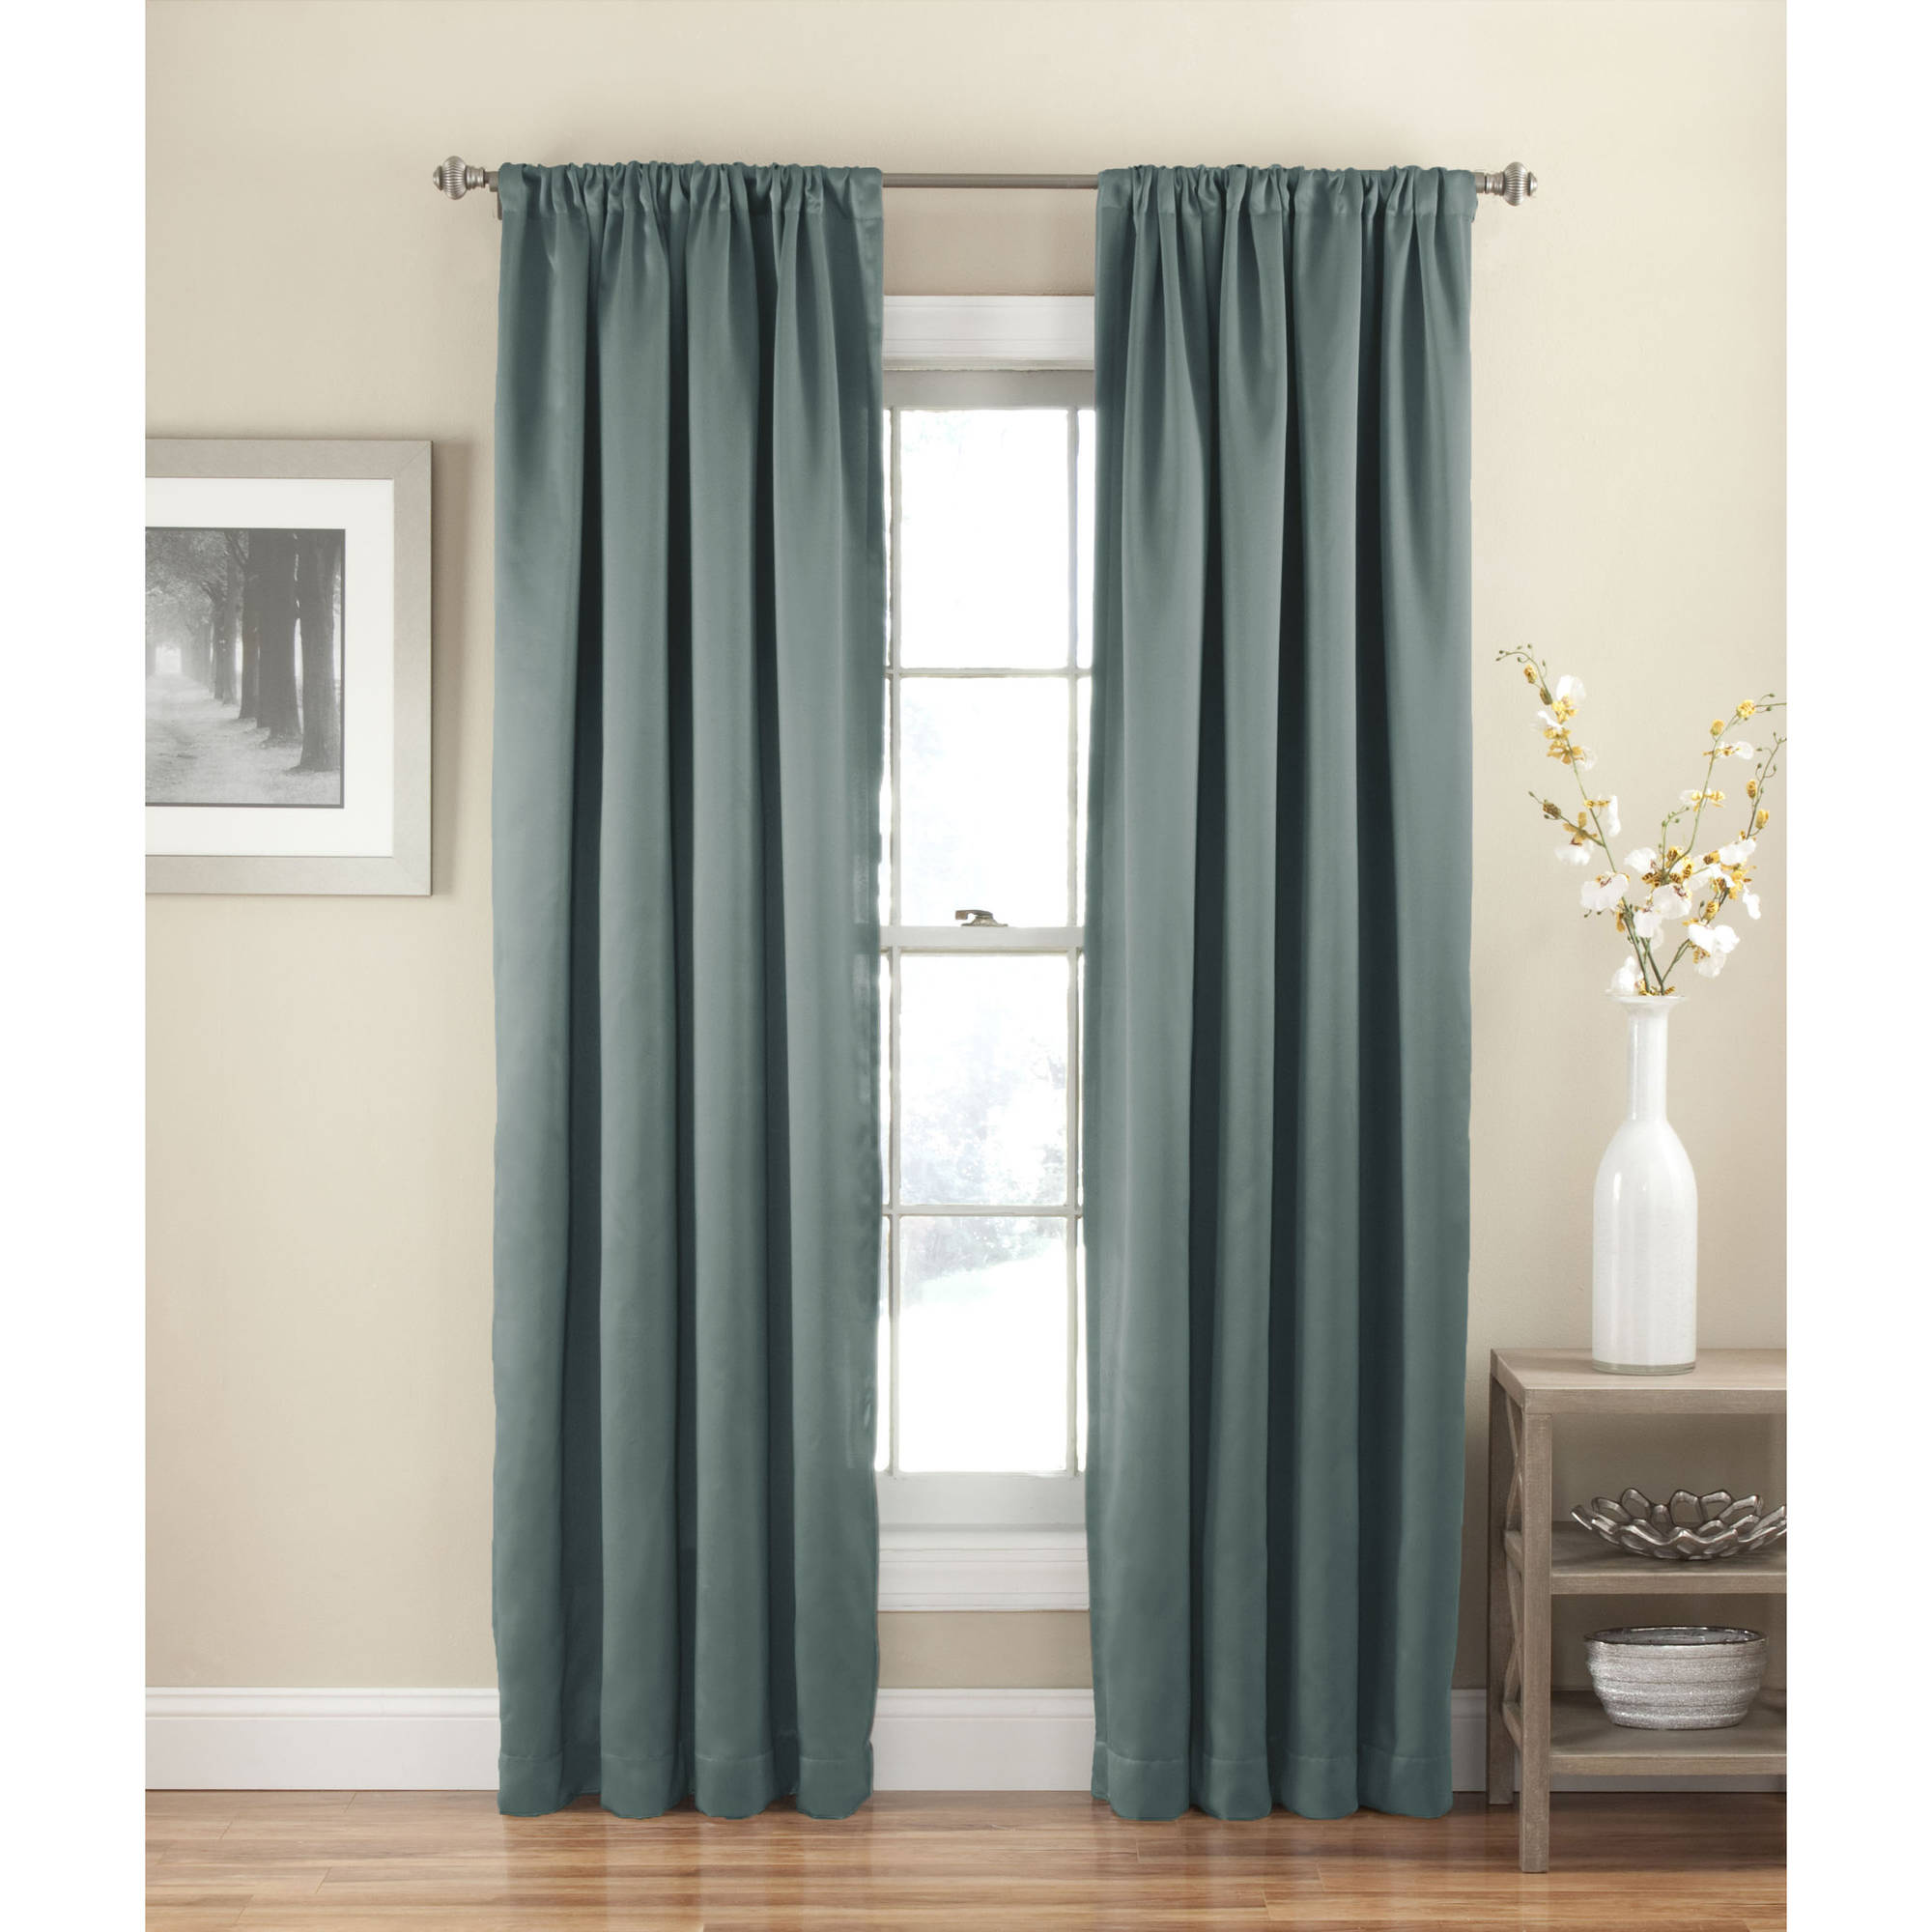 room darkening curtains eclipse solid thermapanel room-darkening curtain - walmart.com NYIDZKA